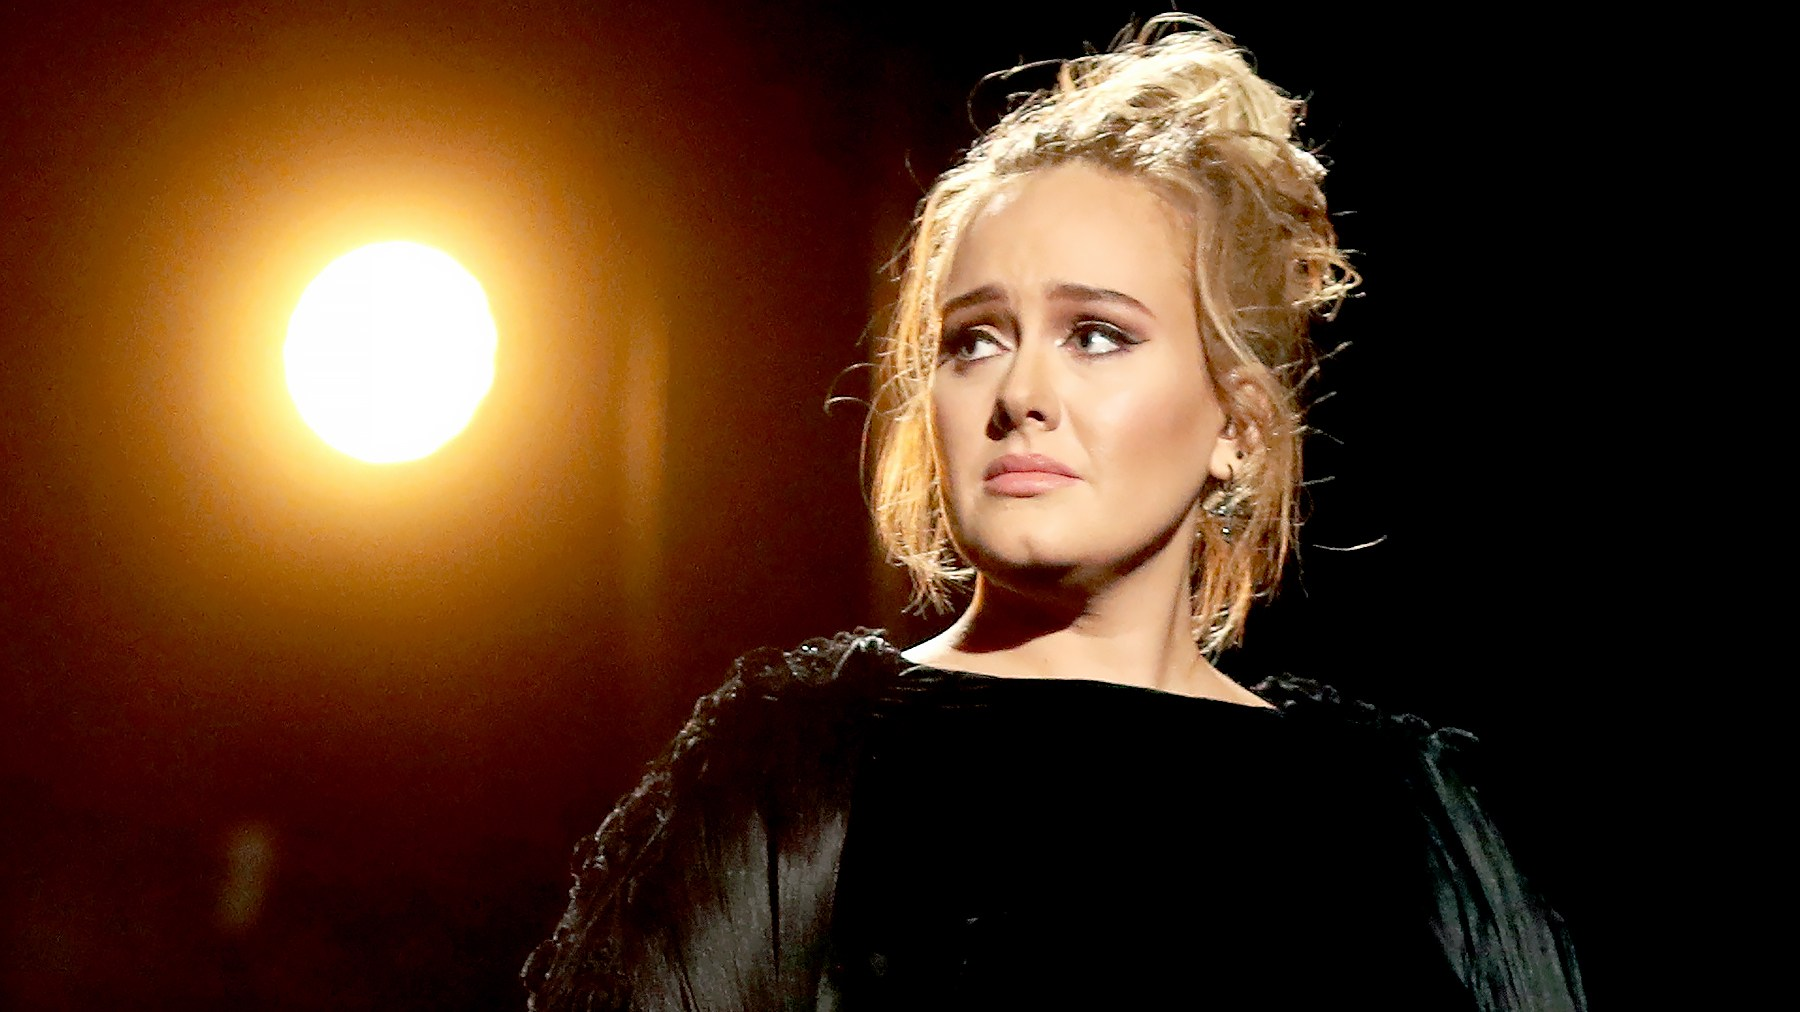 Adele during The 59th GRAMMY Awards at STAPLES Center on February 12, 2017 in Los Angeles, California.